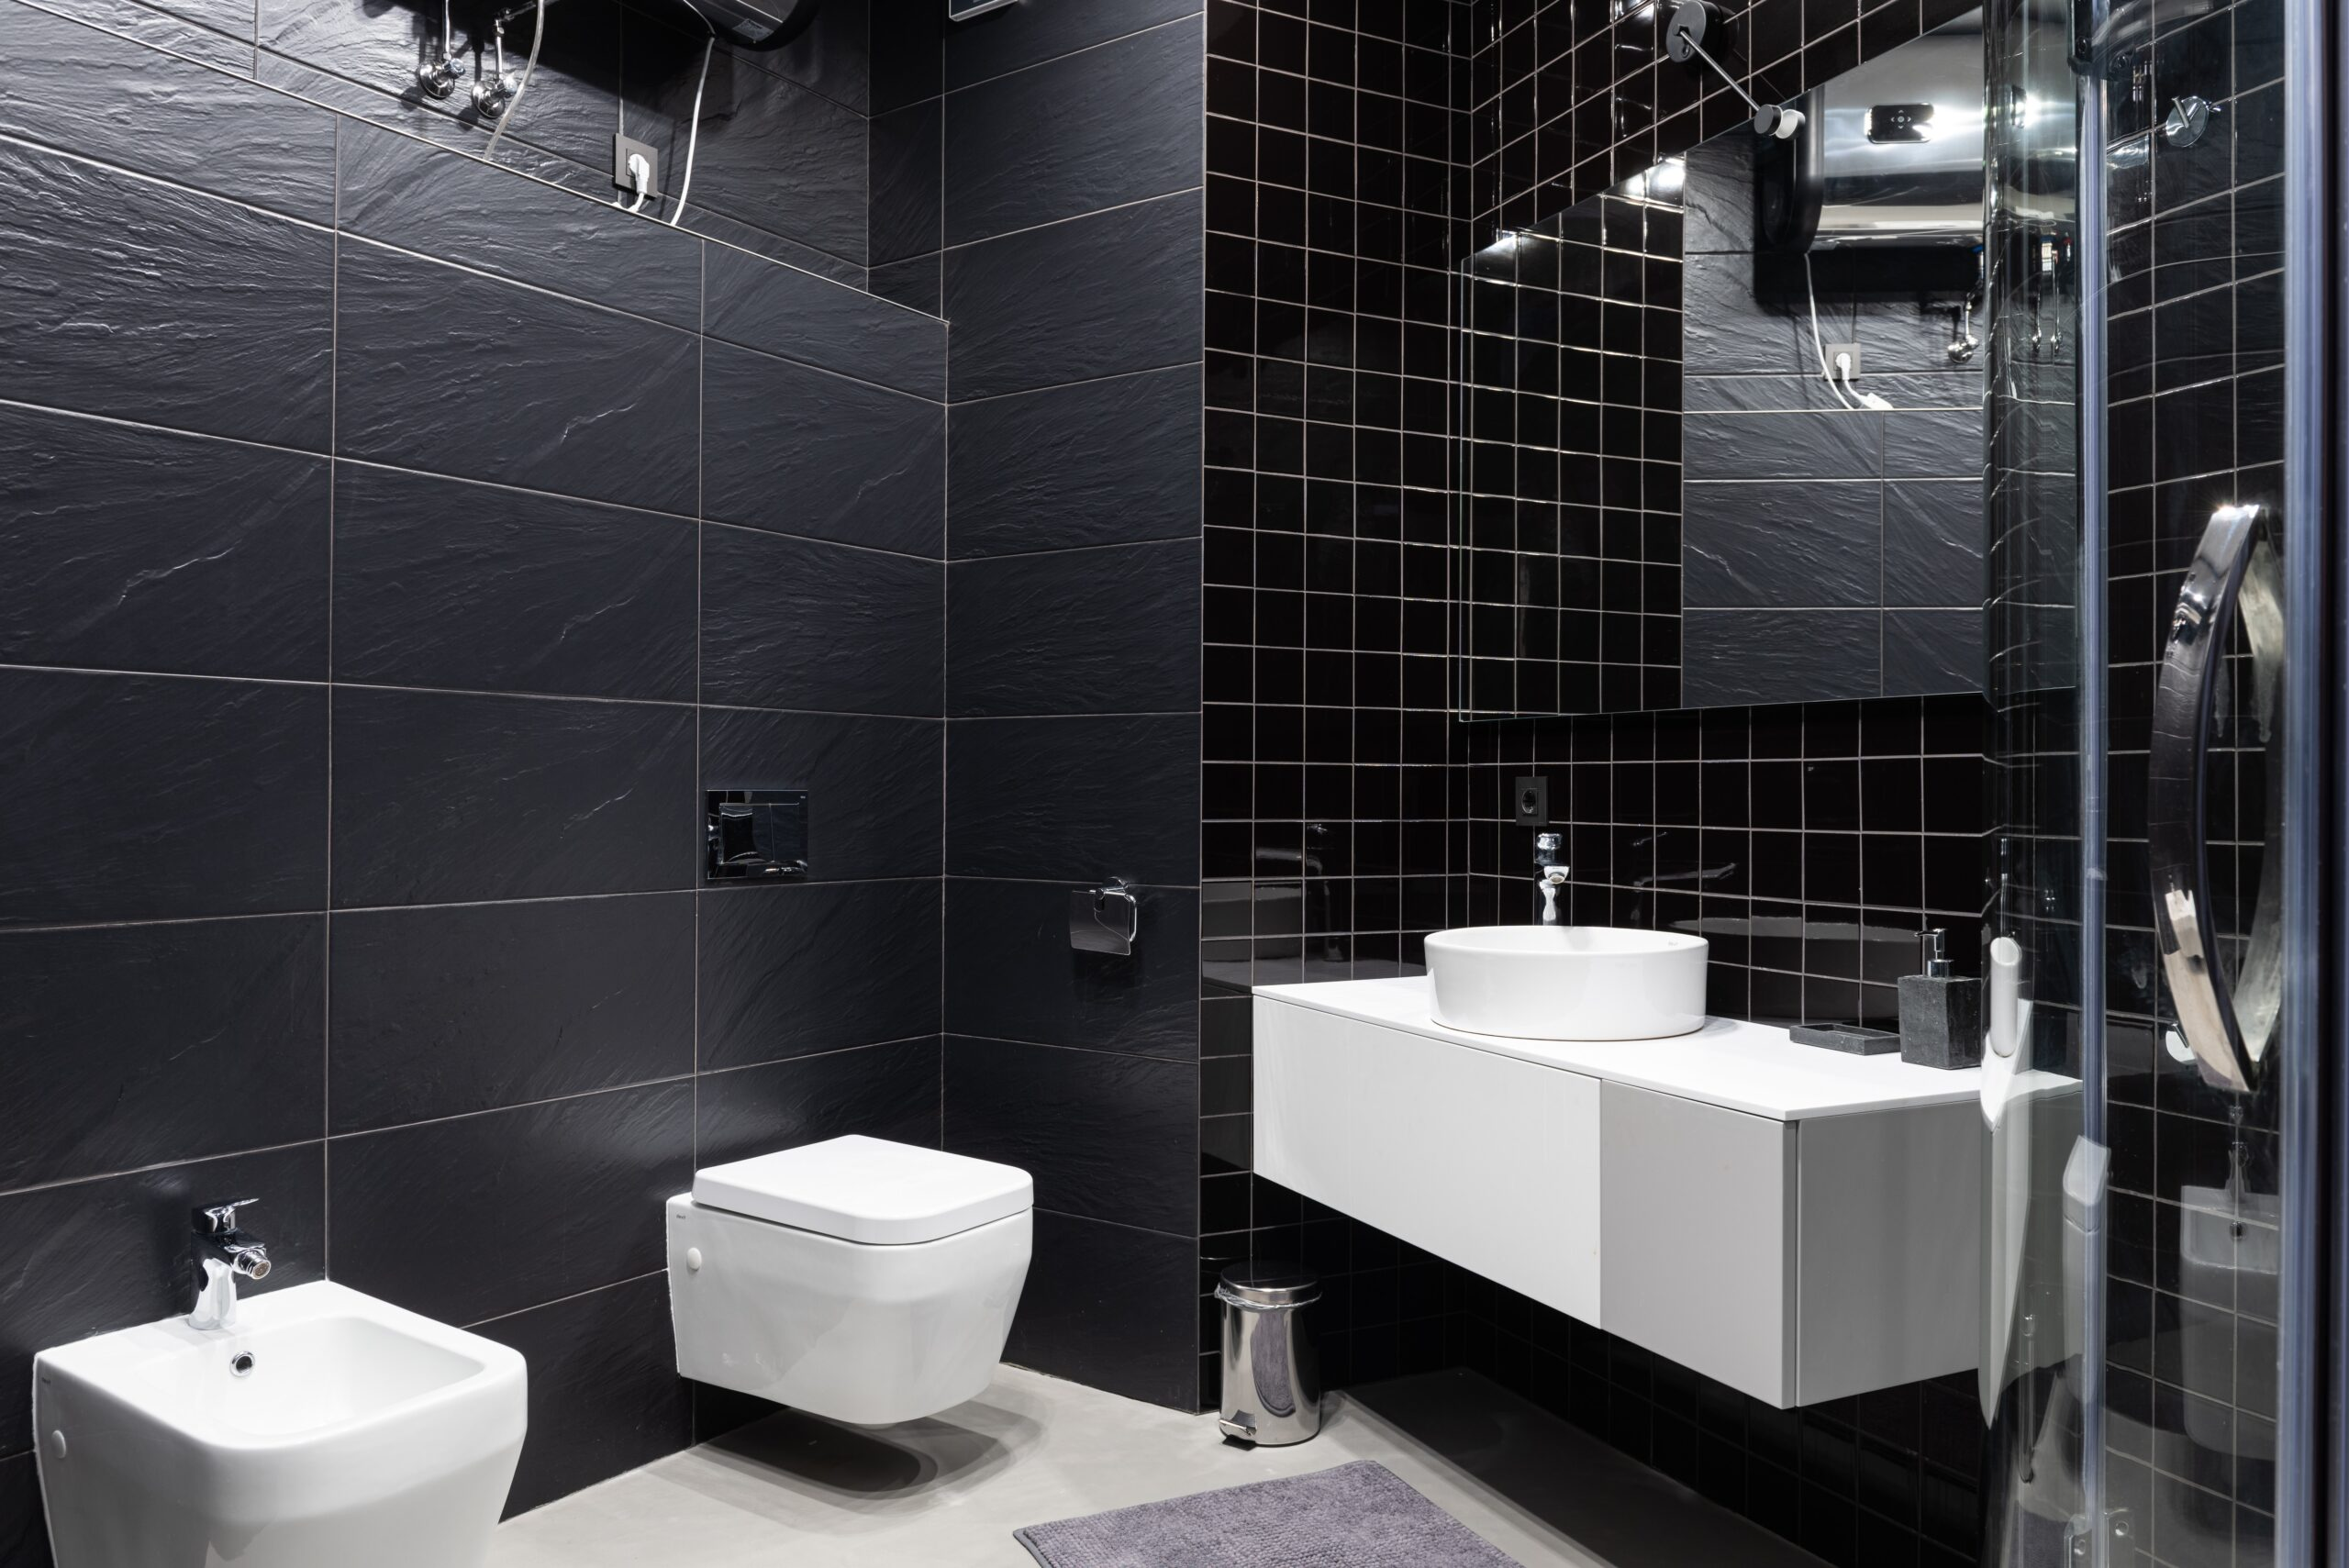 A bathroom with white ceramics and black tiles